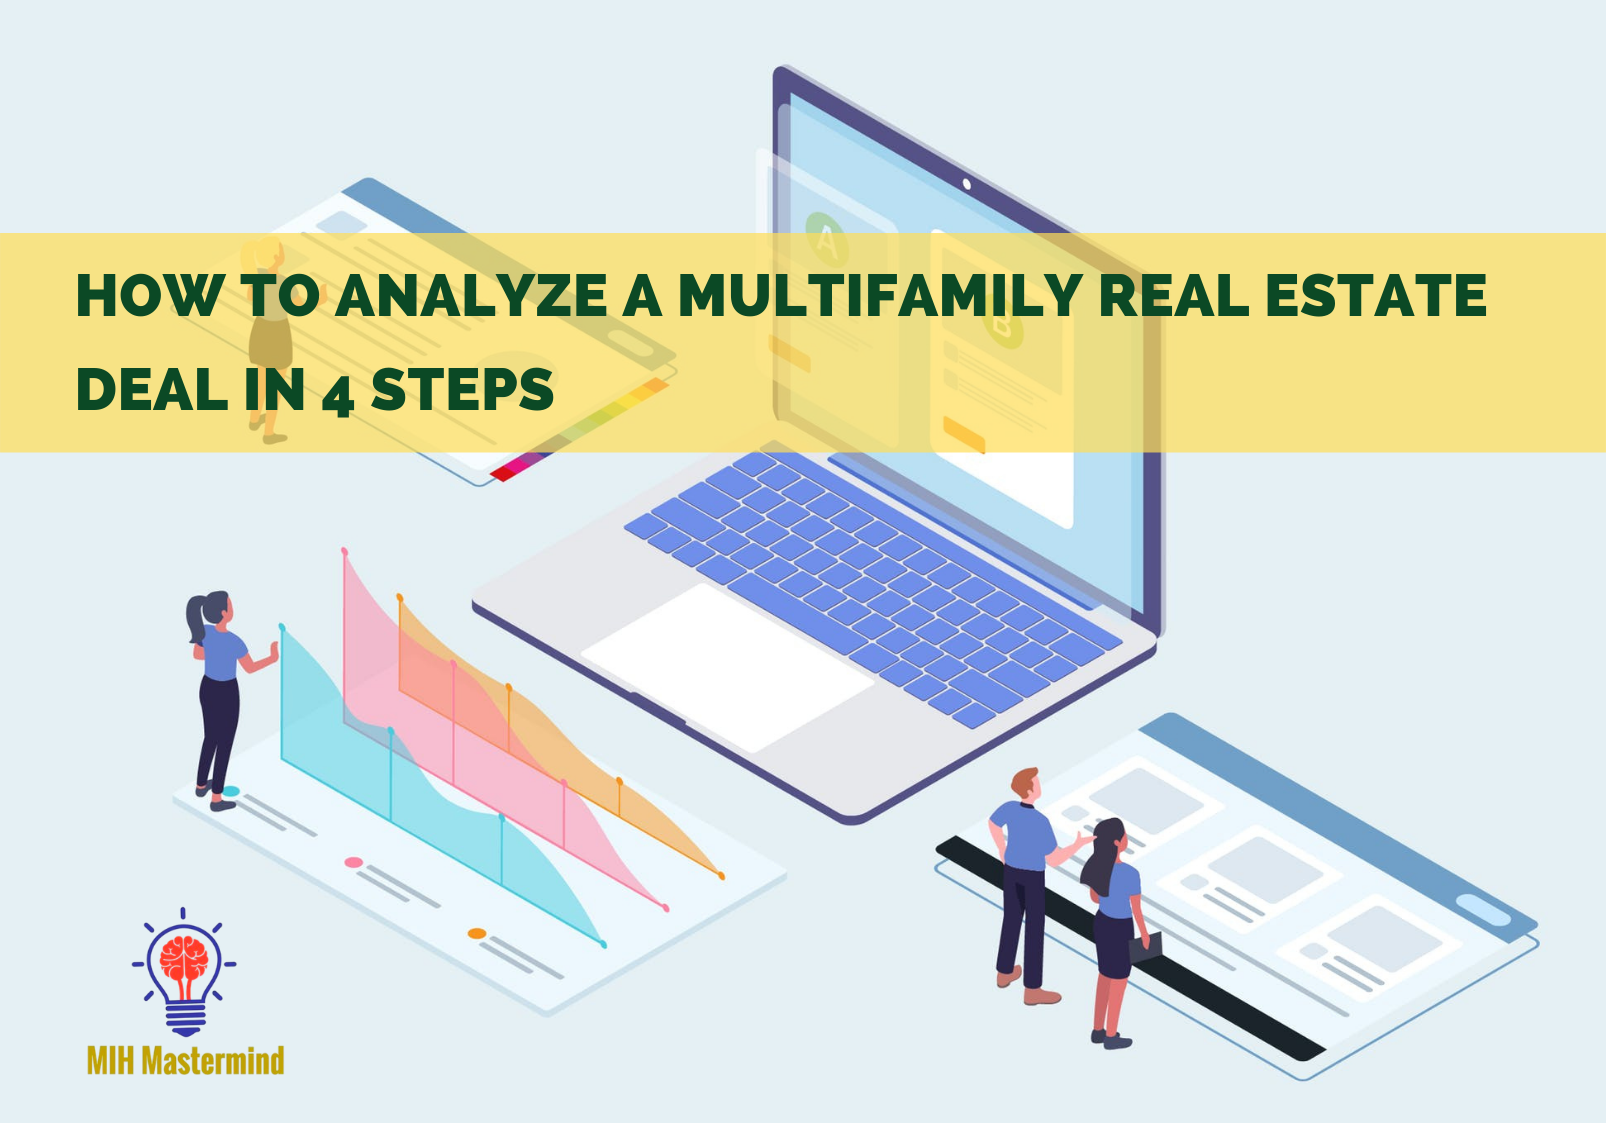 How to Analyze a Multifamily Real Estate Deal